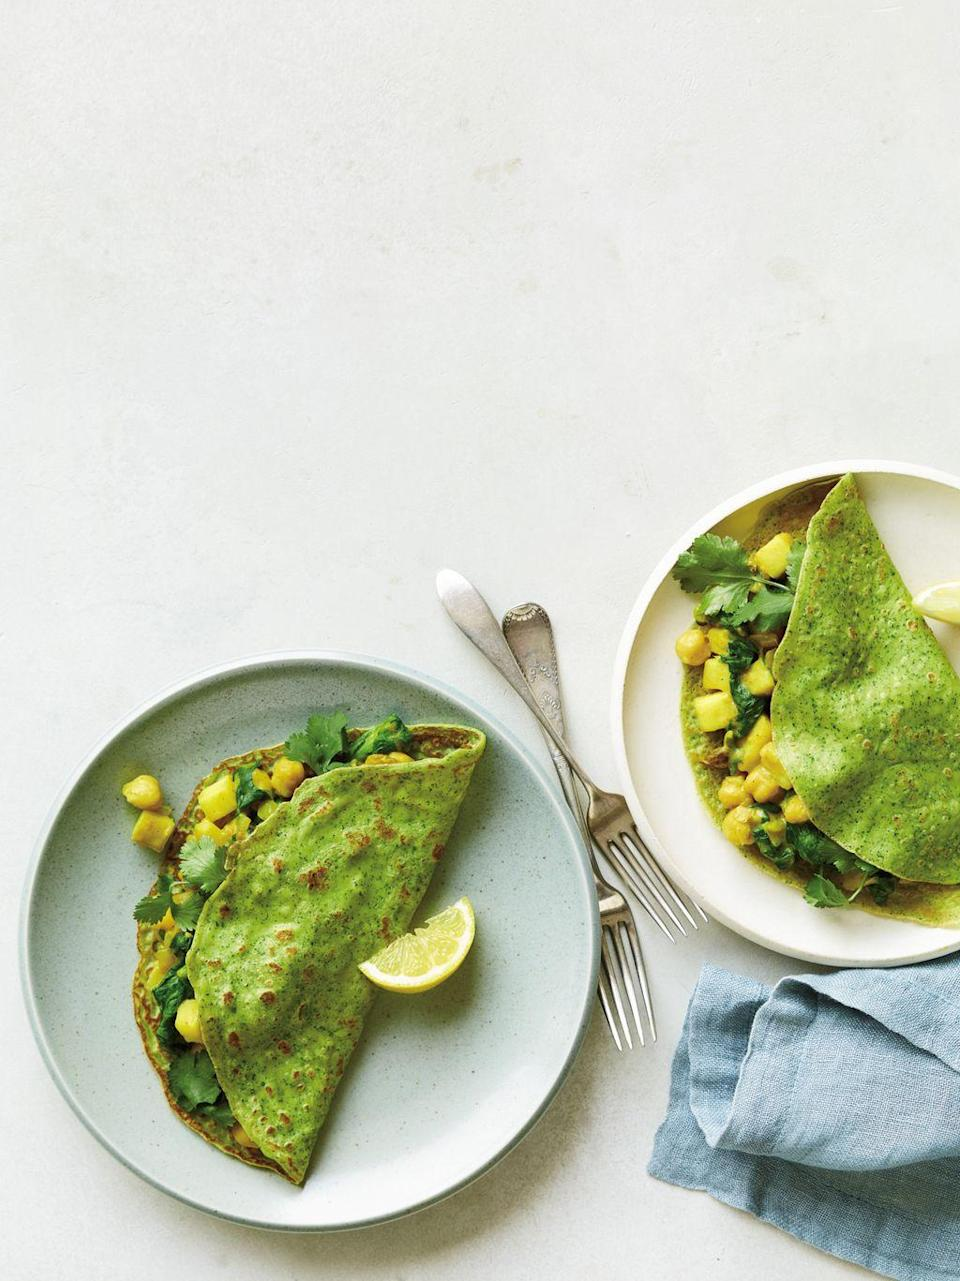 """<p>For a savory take on the French favorite, combine Mediterranean staples like chickpeas, eggs, and lemons with bright cilantro and spicy curry. It's just about the perfect brunch.</p><p><a href=""""https://www.prevention.com/food-nutrition/recipes/a20501447/spinach-curry-crepes-with-apple-raisins-and-chickpeas/"""" rel=""""nofollow noopener"""" target=""""_blank"""" data-ylk=""""slk:Get the recipe from Prevention »"""" class=""""link rapid-noclick-resp""""><strong><em>Get the recipe from Prevention »</em></strong></a></p>"""